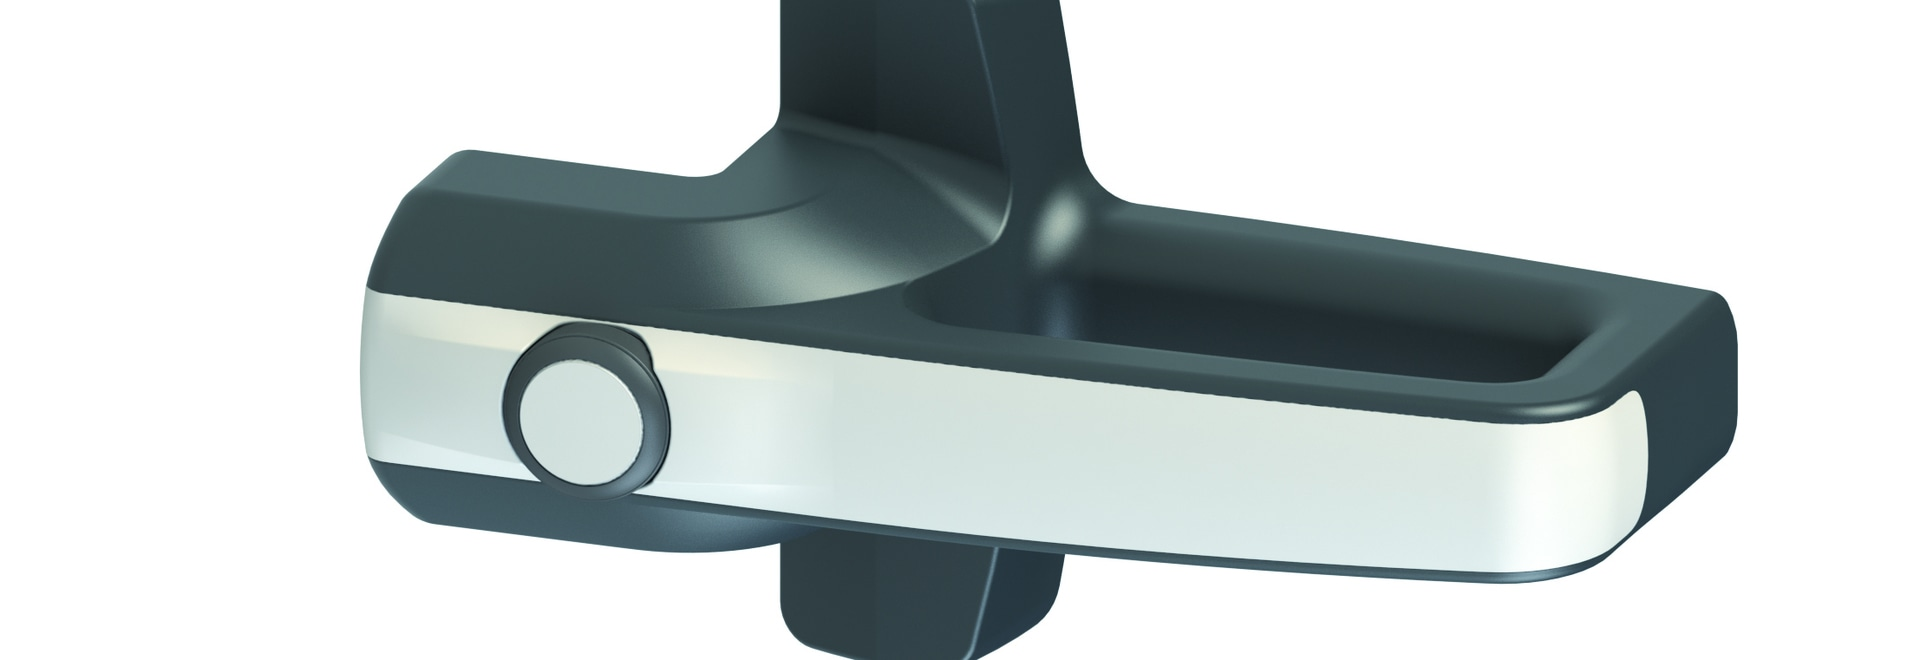 New safety handles P-KUBE Krome series